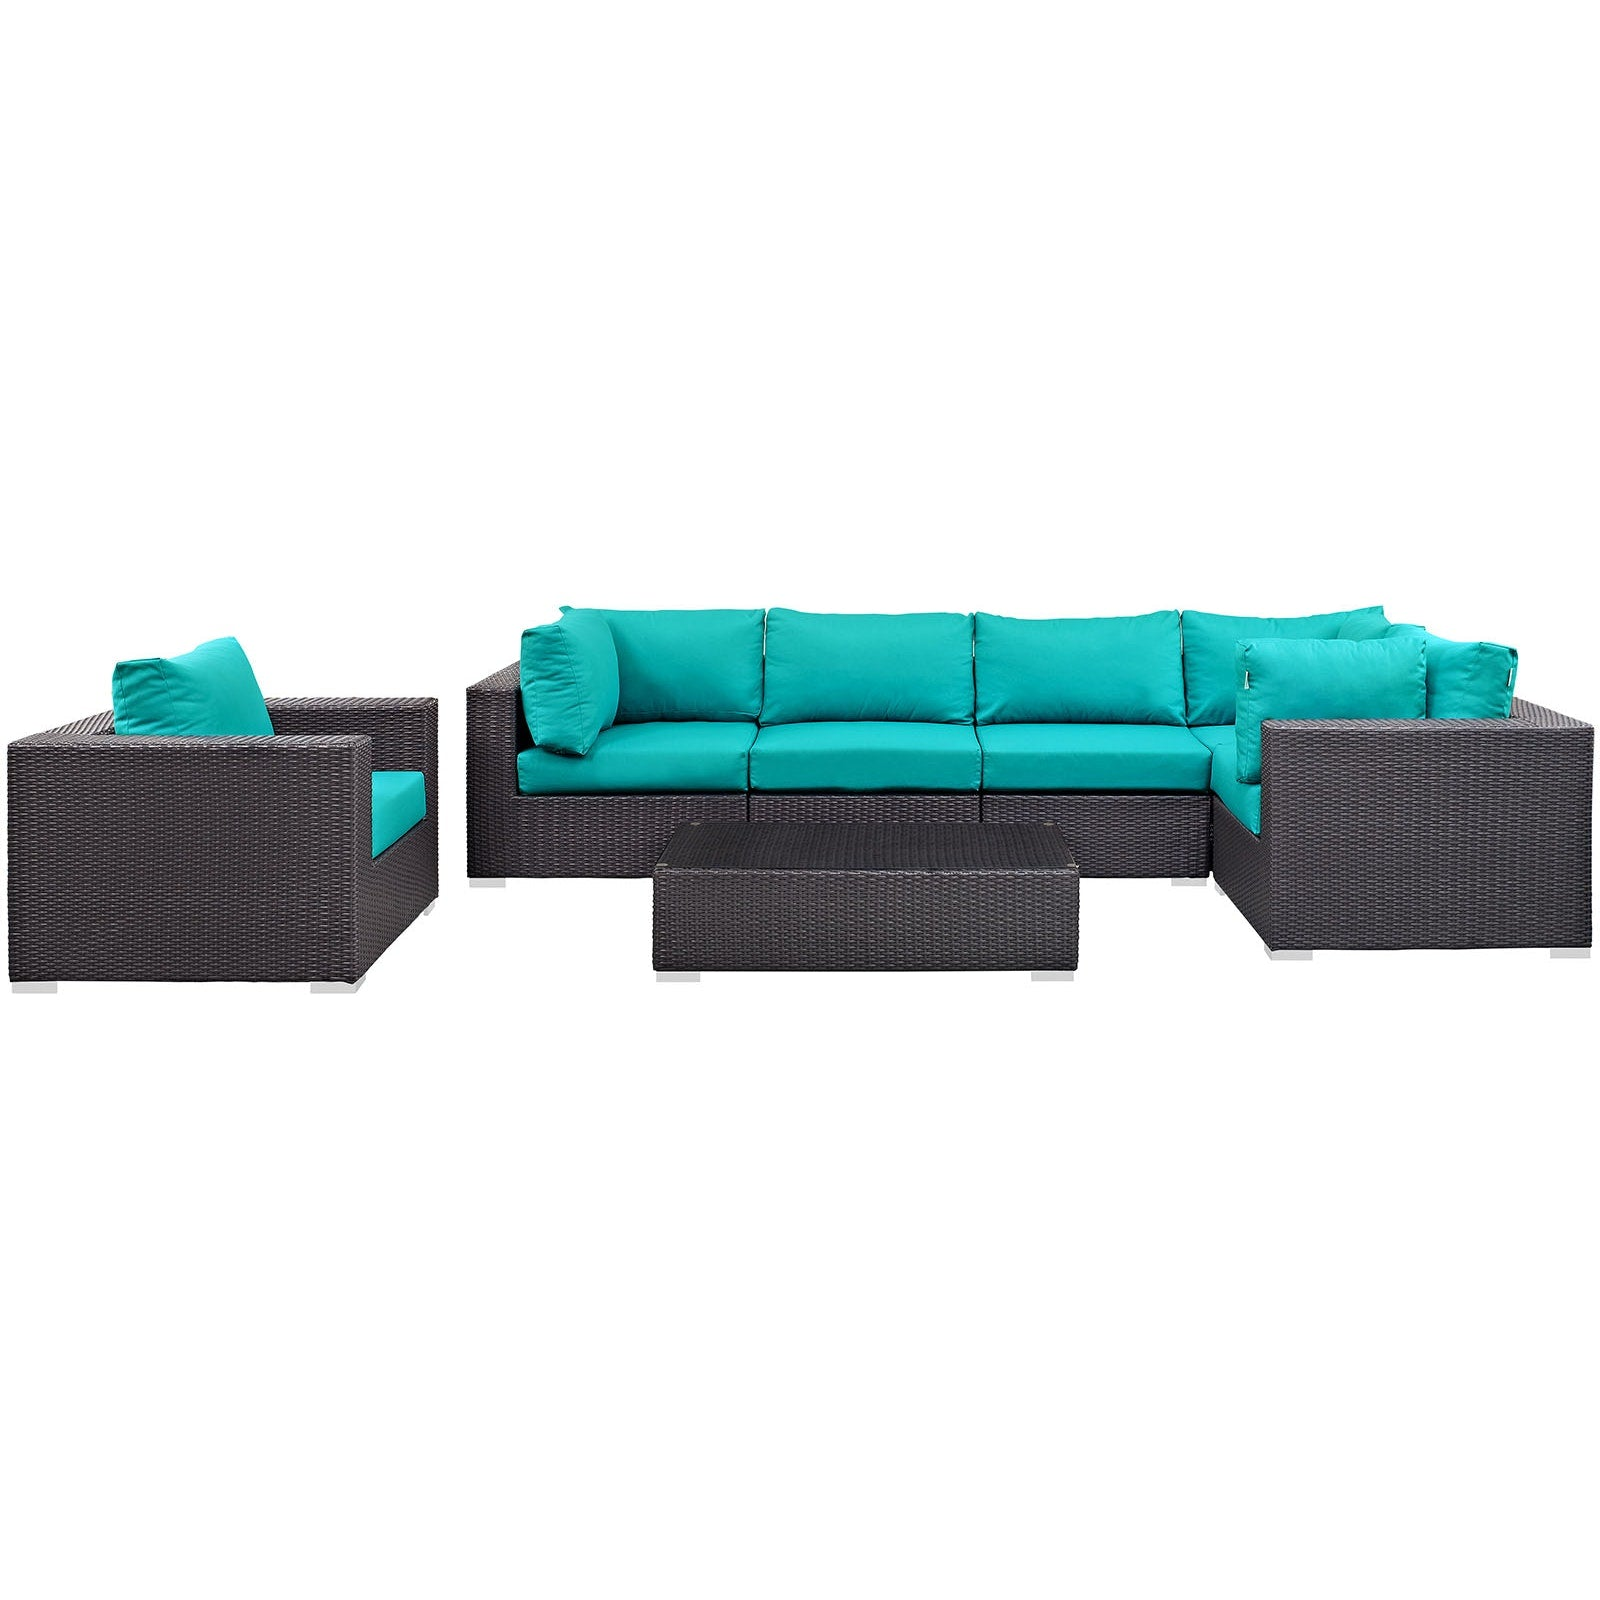 Convene 7 Piece Outdoor Patio Sectional Set - Espresso Turquoise